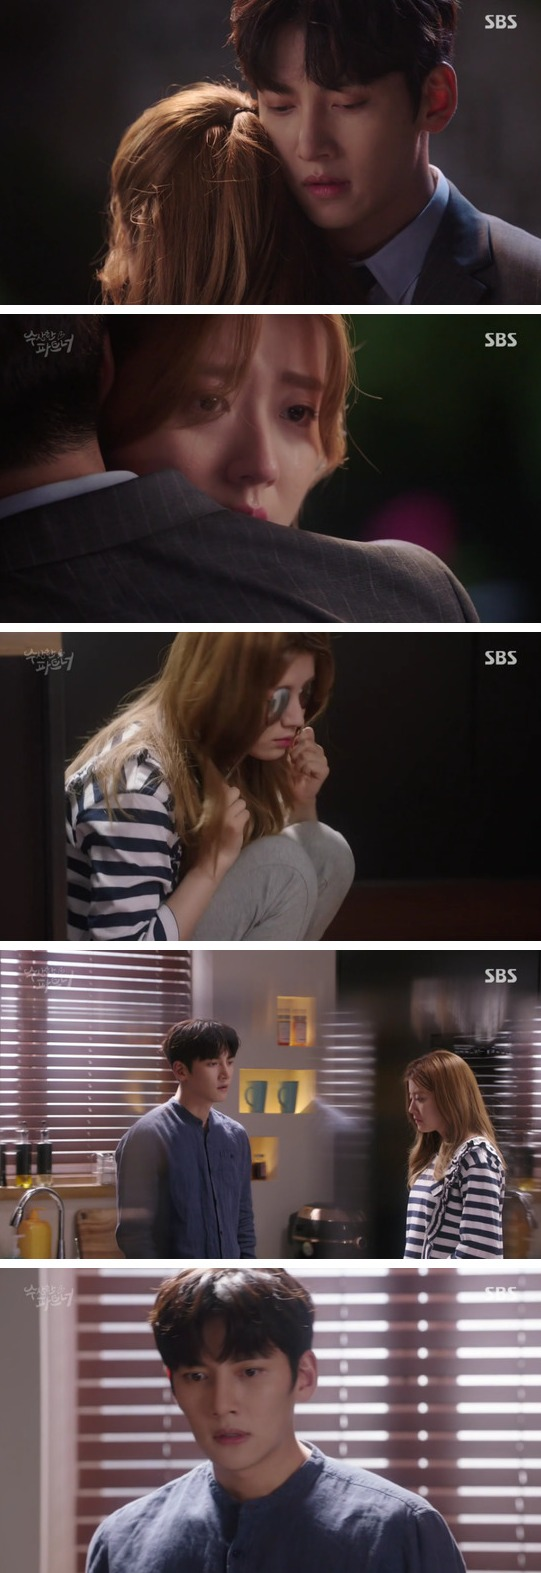 [Spoiler] Added episodes 13 and 14 captures for the Korean drama 'Suspicious Partner'